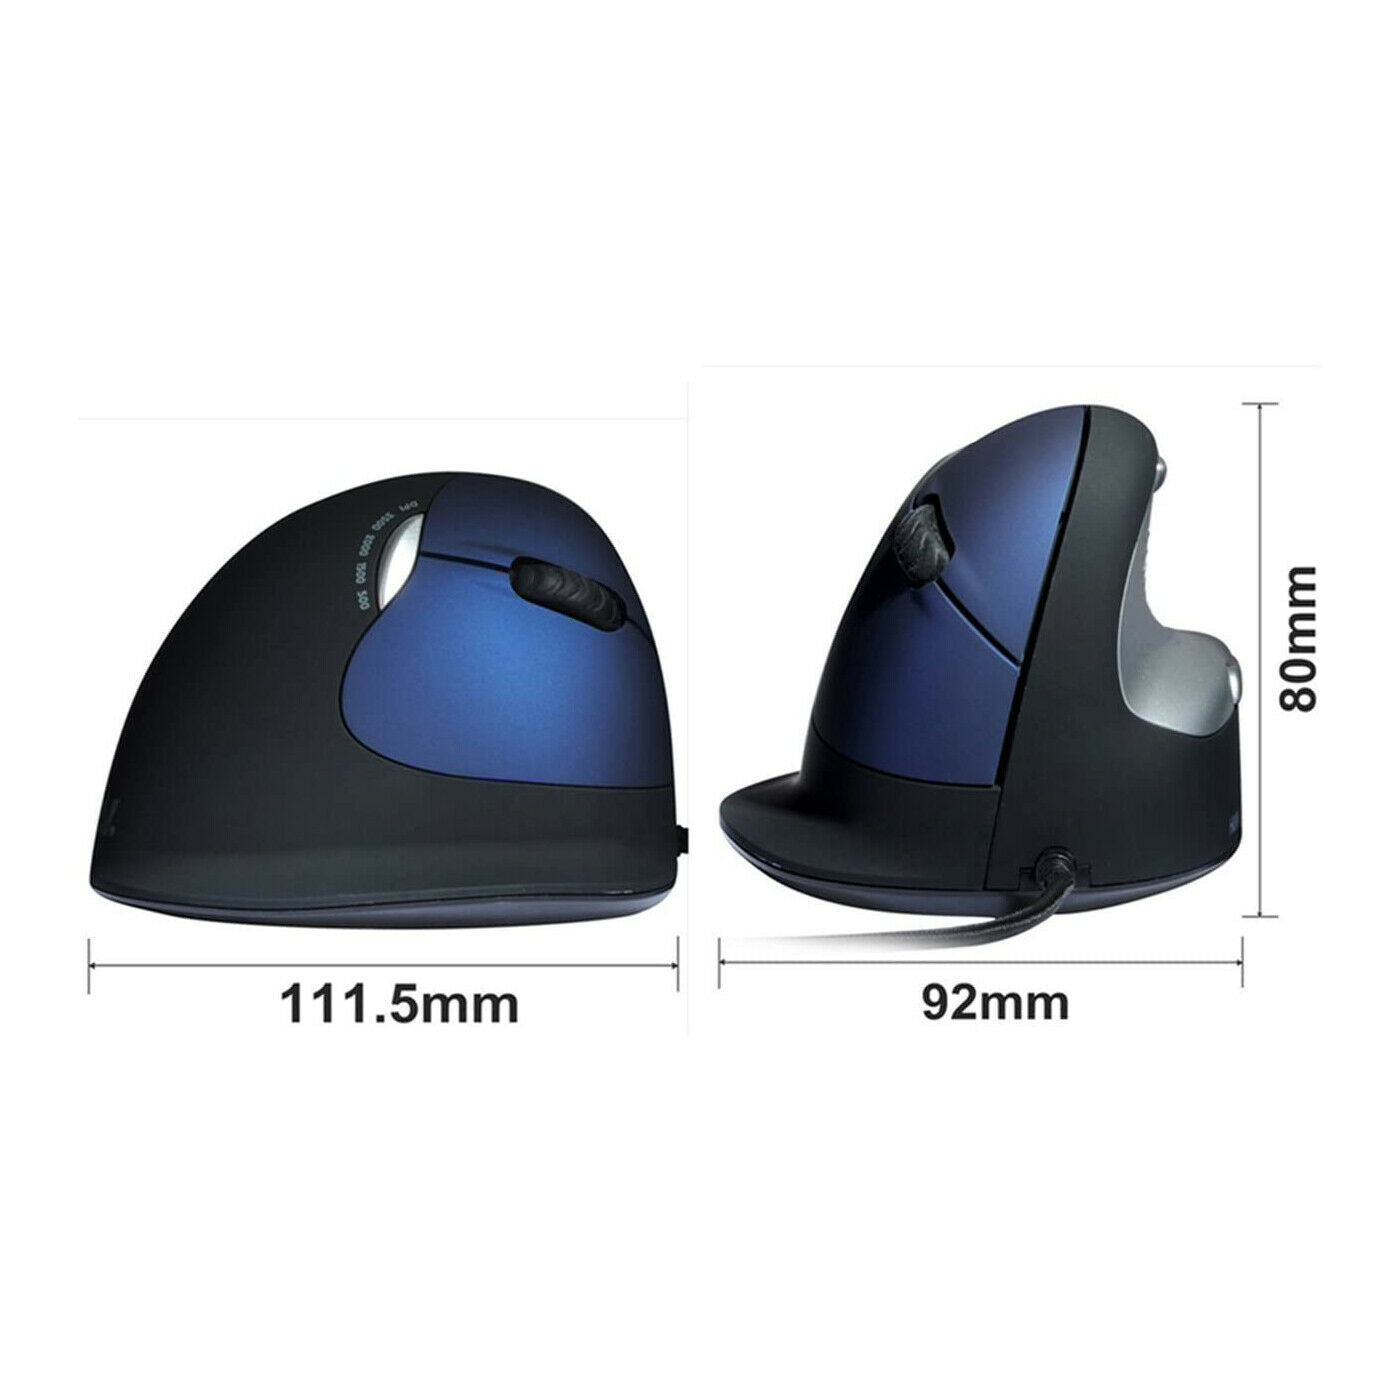 EV Human Ergonomic Design USB Wired Vertical Mouse with 500/1000/1800/2400DPI